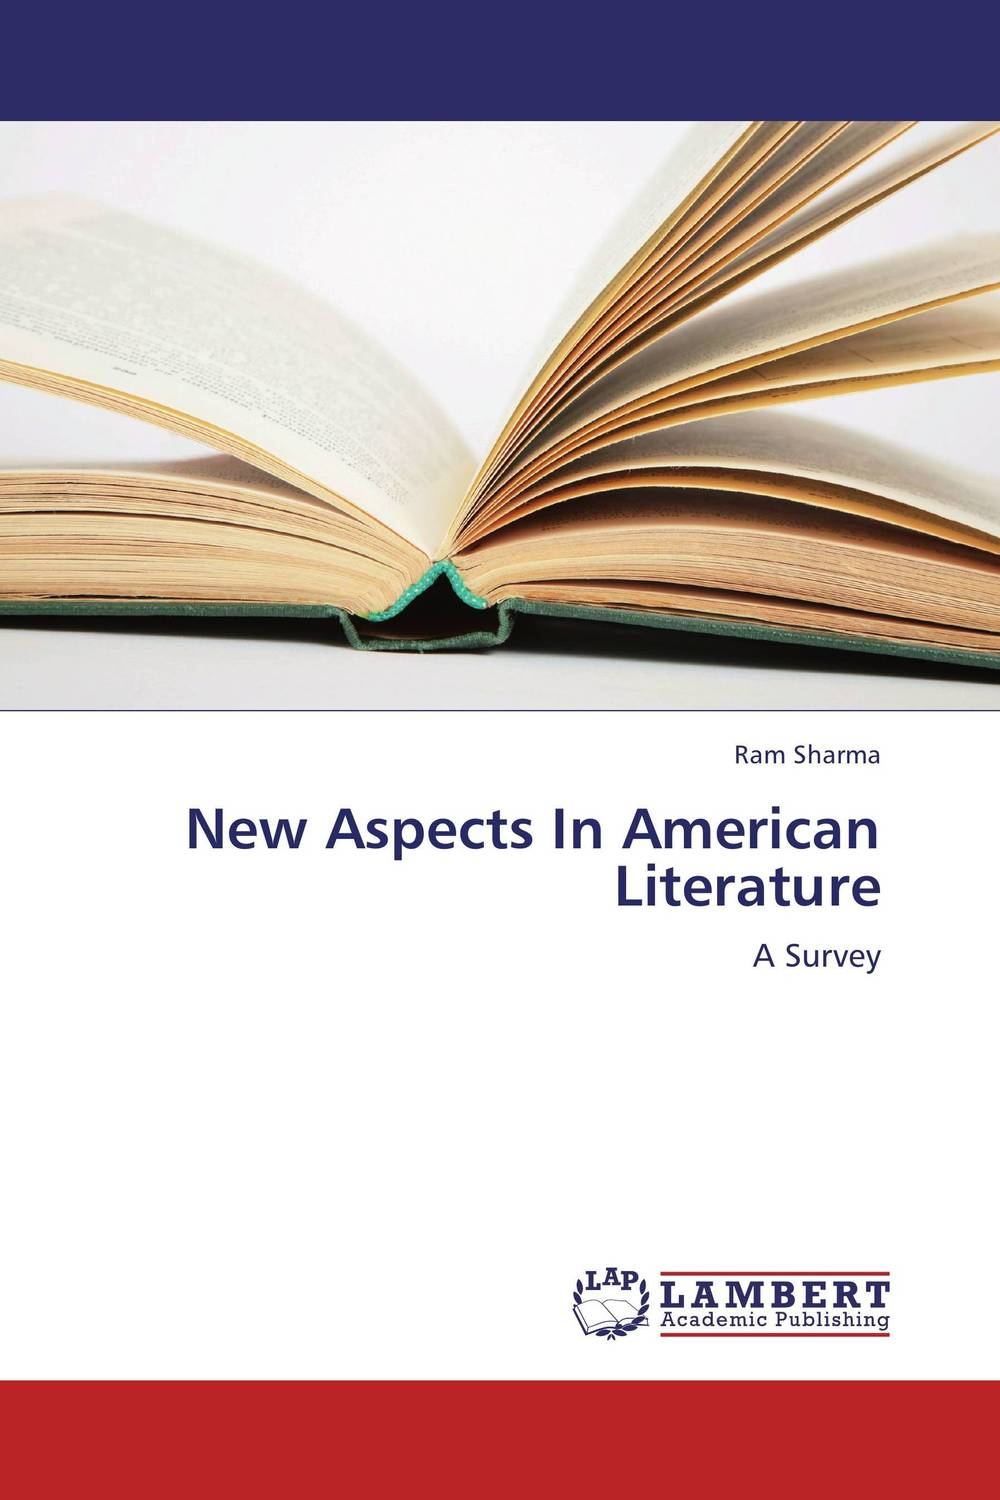 New Aspects In American Literature